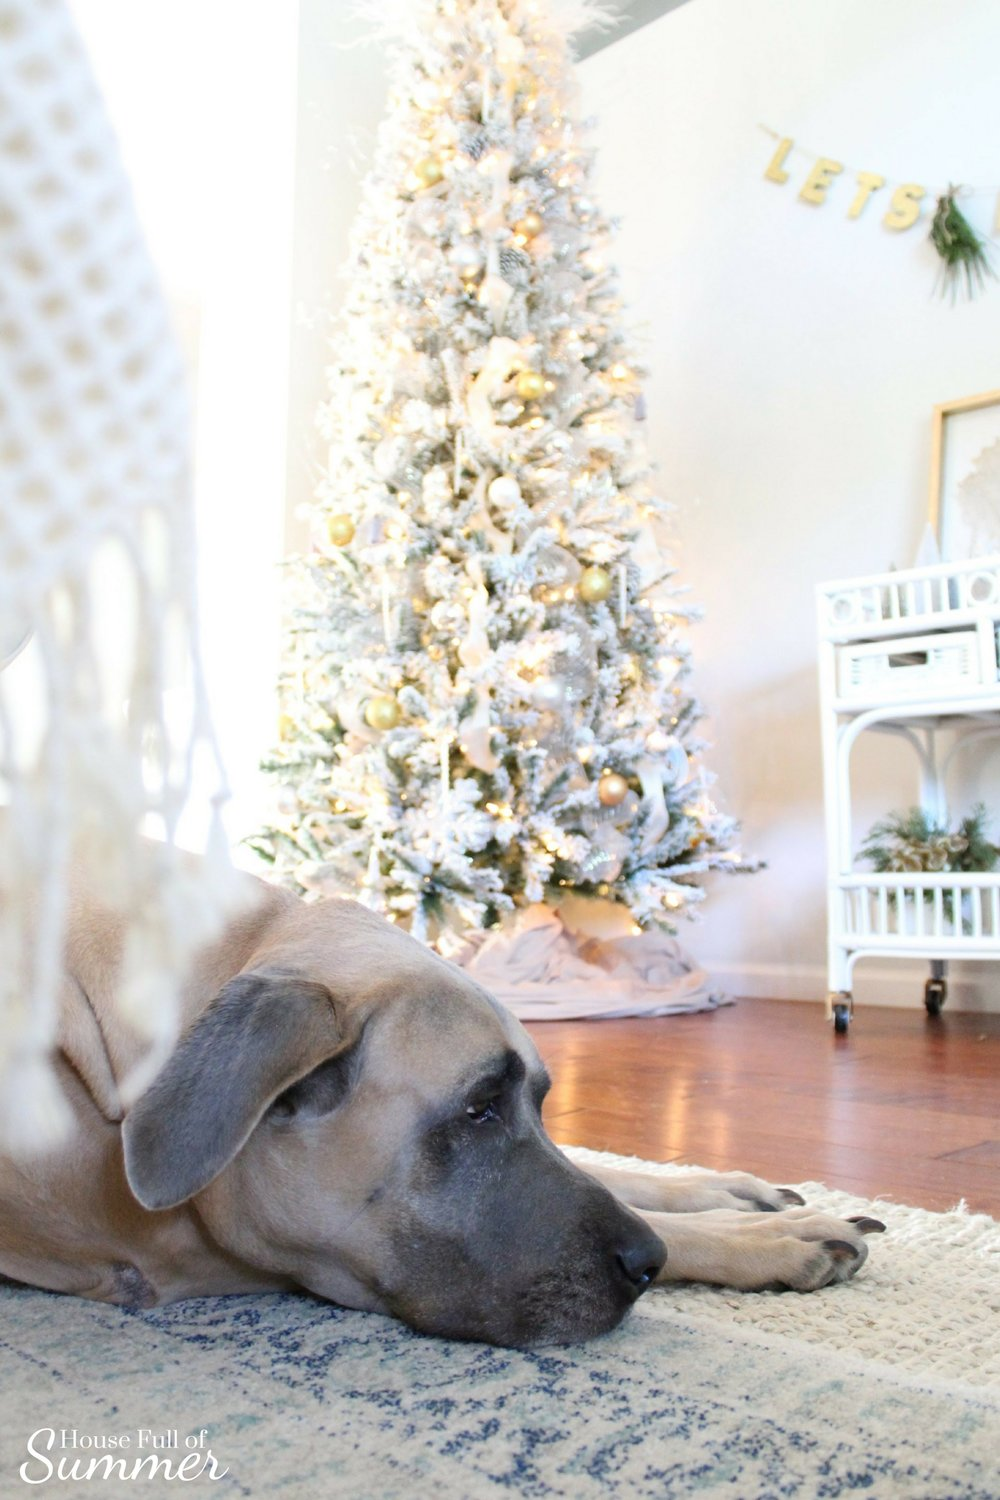 Christmas Home Tour | House Full of Summer blog hop - Cheerful Christmas Home Tourcoastal christmas neutral christmas decor, holiday home tour, florida christmas, dog christmas photos